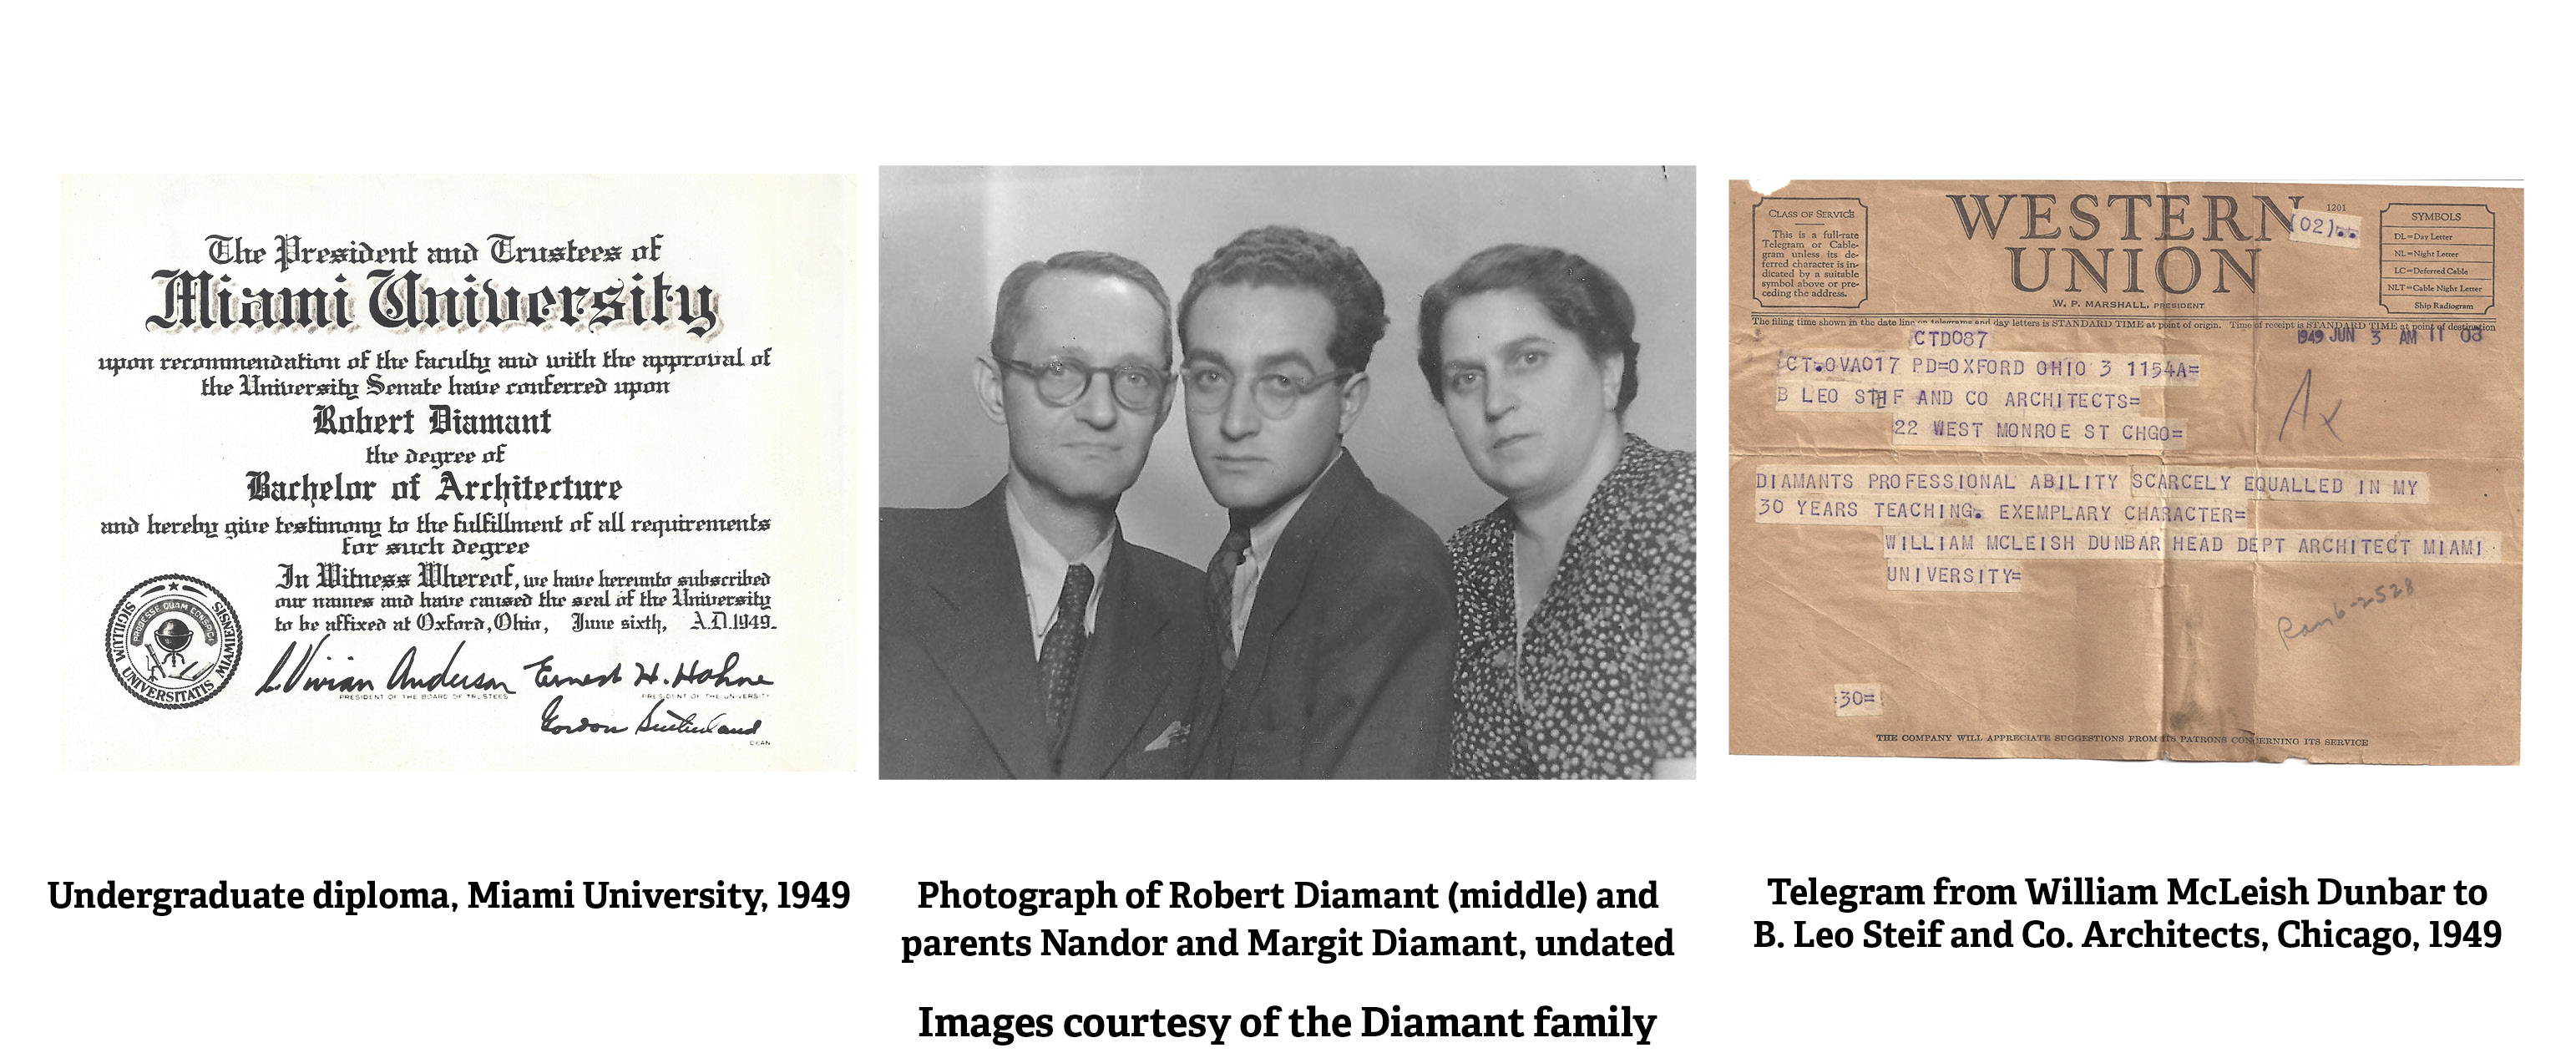 Undergraduate diploma, Miami University, 1949 and Photograph of Robert Diamant (middle) and parents Nandor and Margit Diamant, undated and Telegram from William McLeish Dunbar to B. Leo Steif and Co. Architects, Chicago, 1949